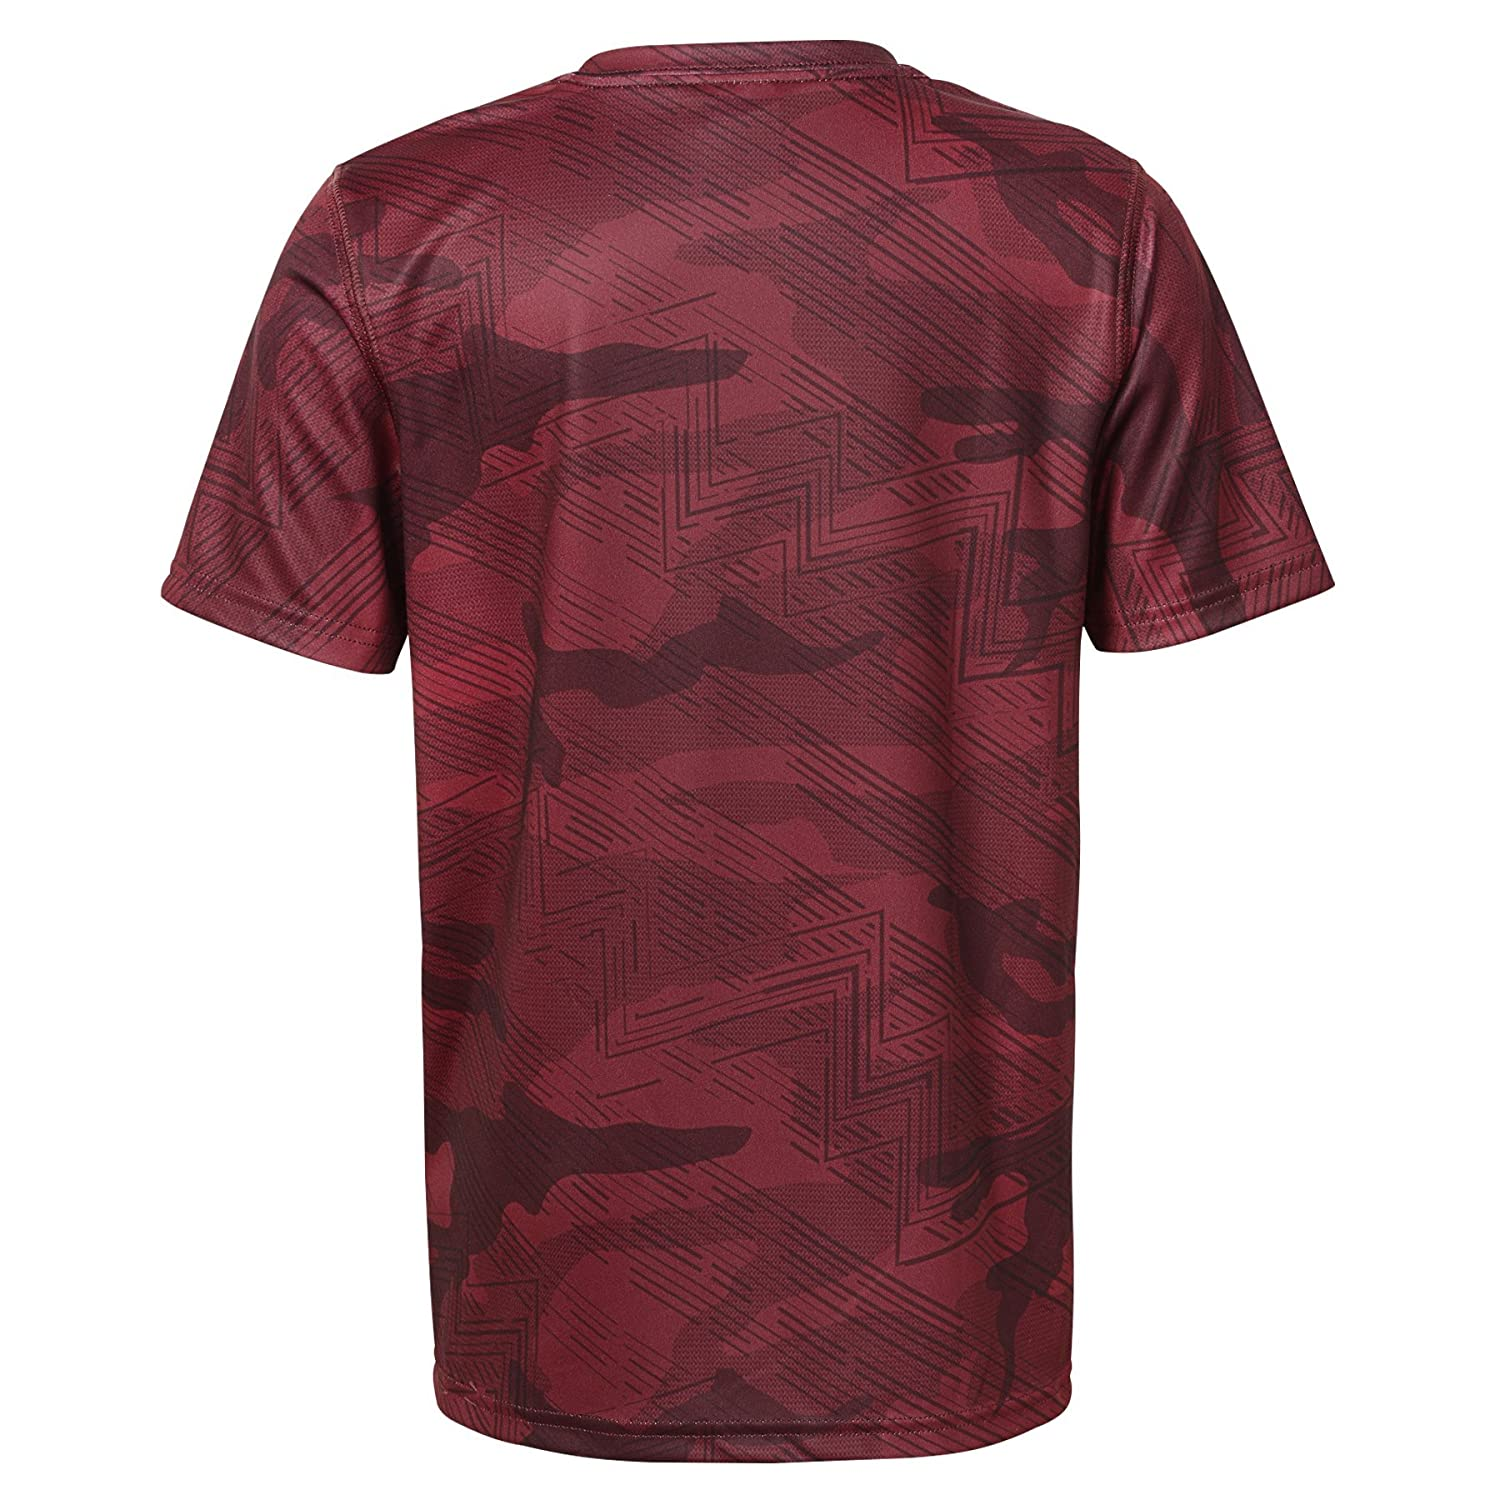 OuterStuff Boys Big Full Assault Sublimated Short Sleeve Tee